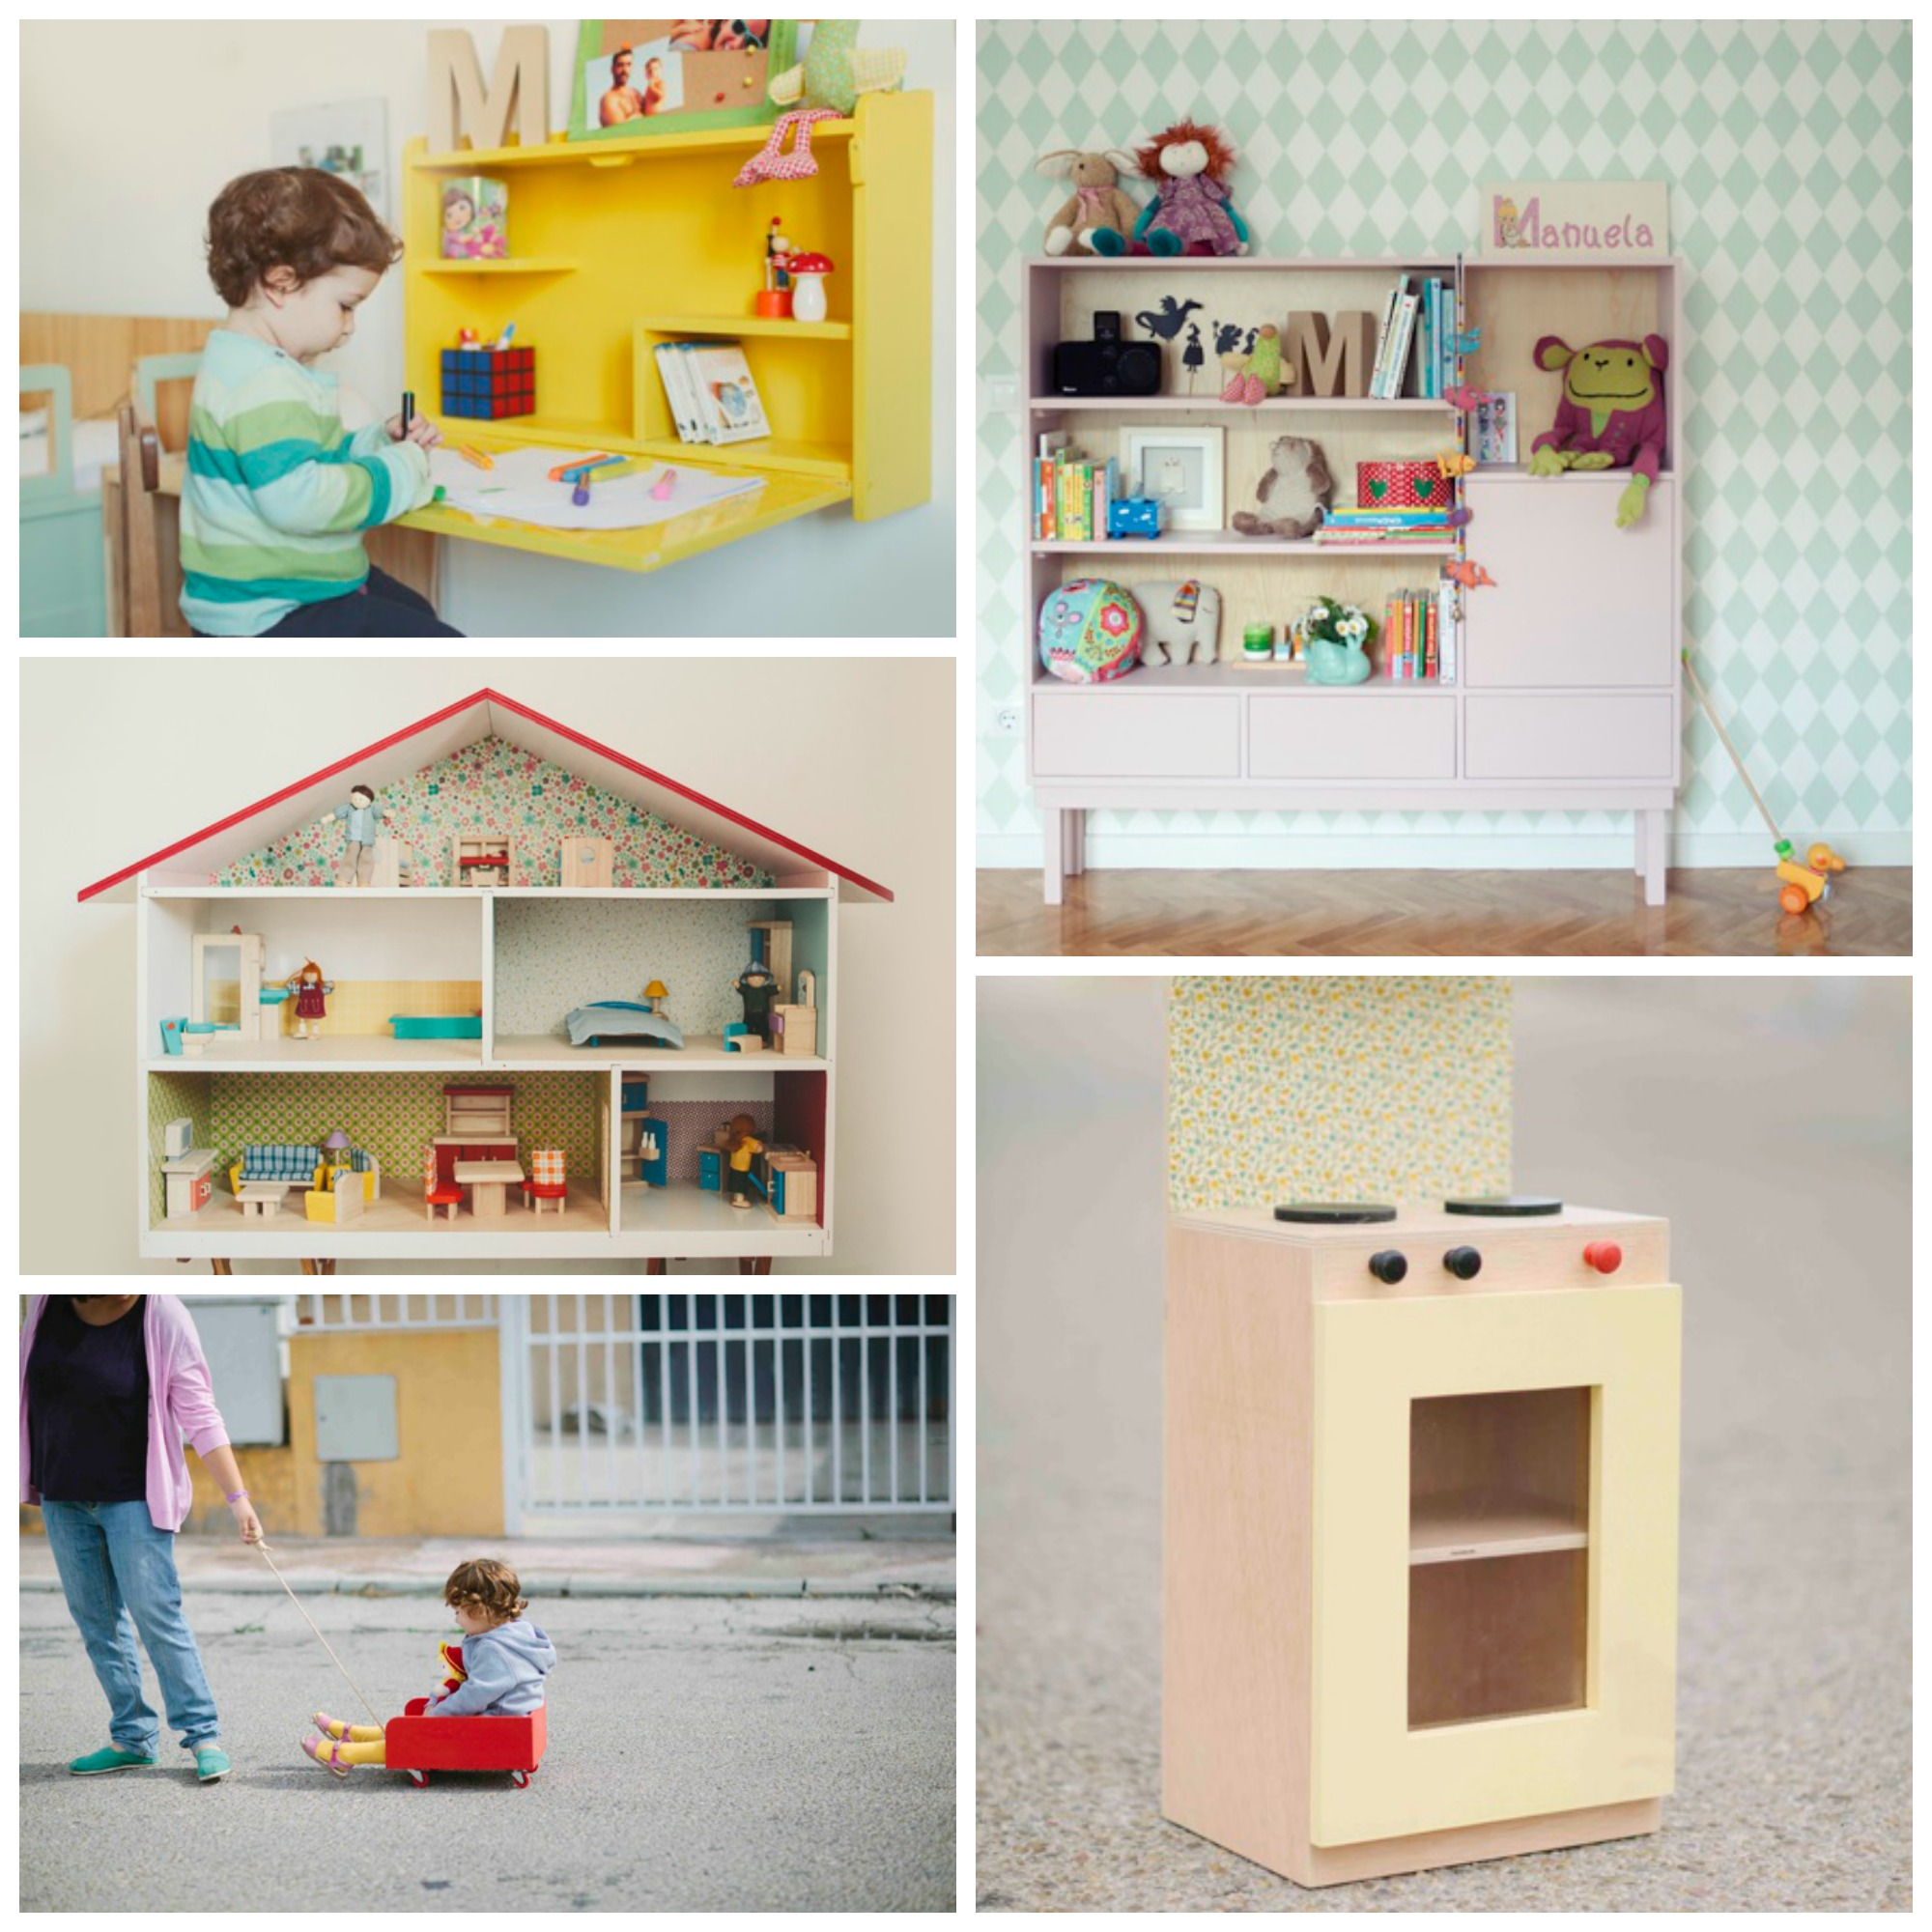 Muebles infantiles a medida dise os arquitect nicos for Muebles infantiles modernos